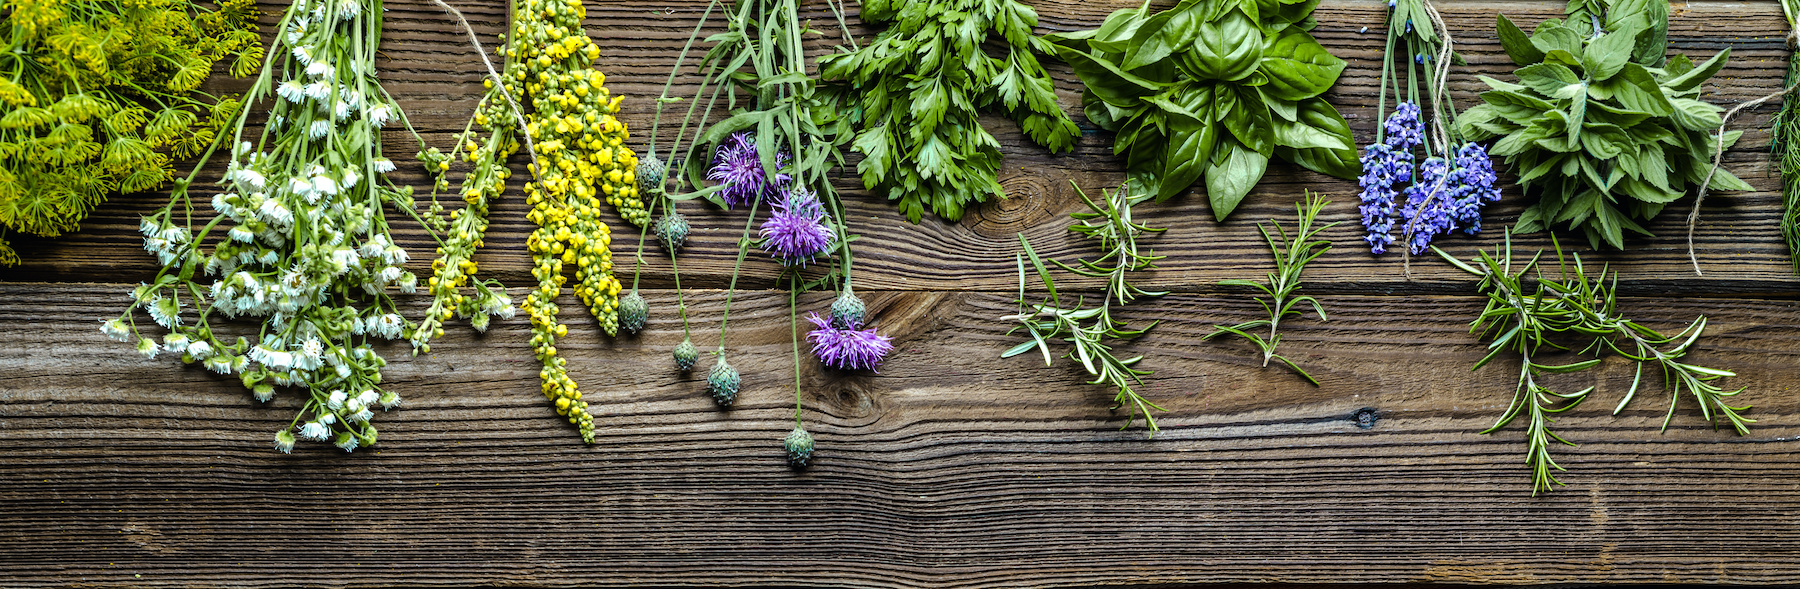 Planting a herb garden bed